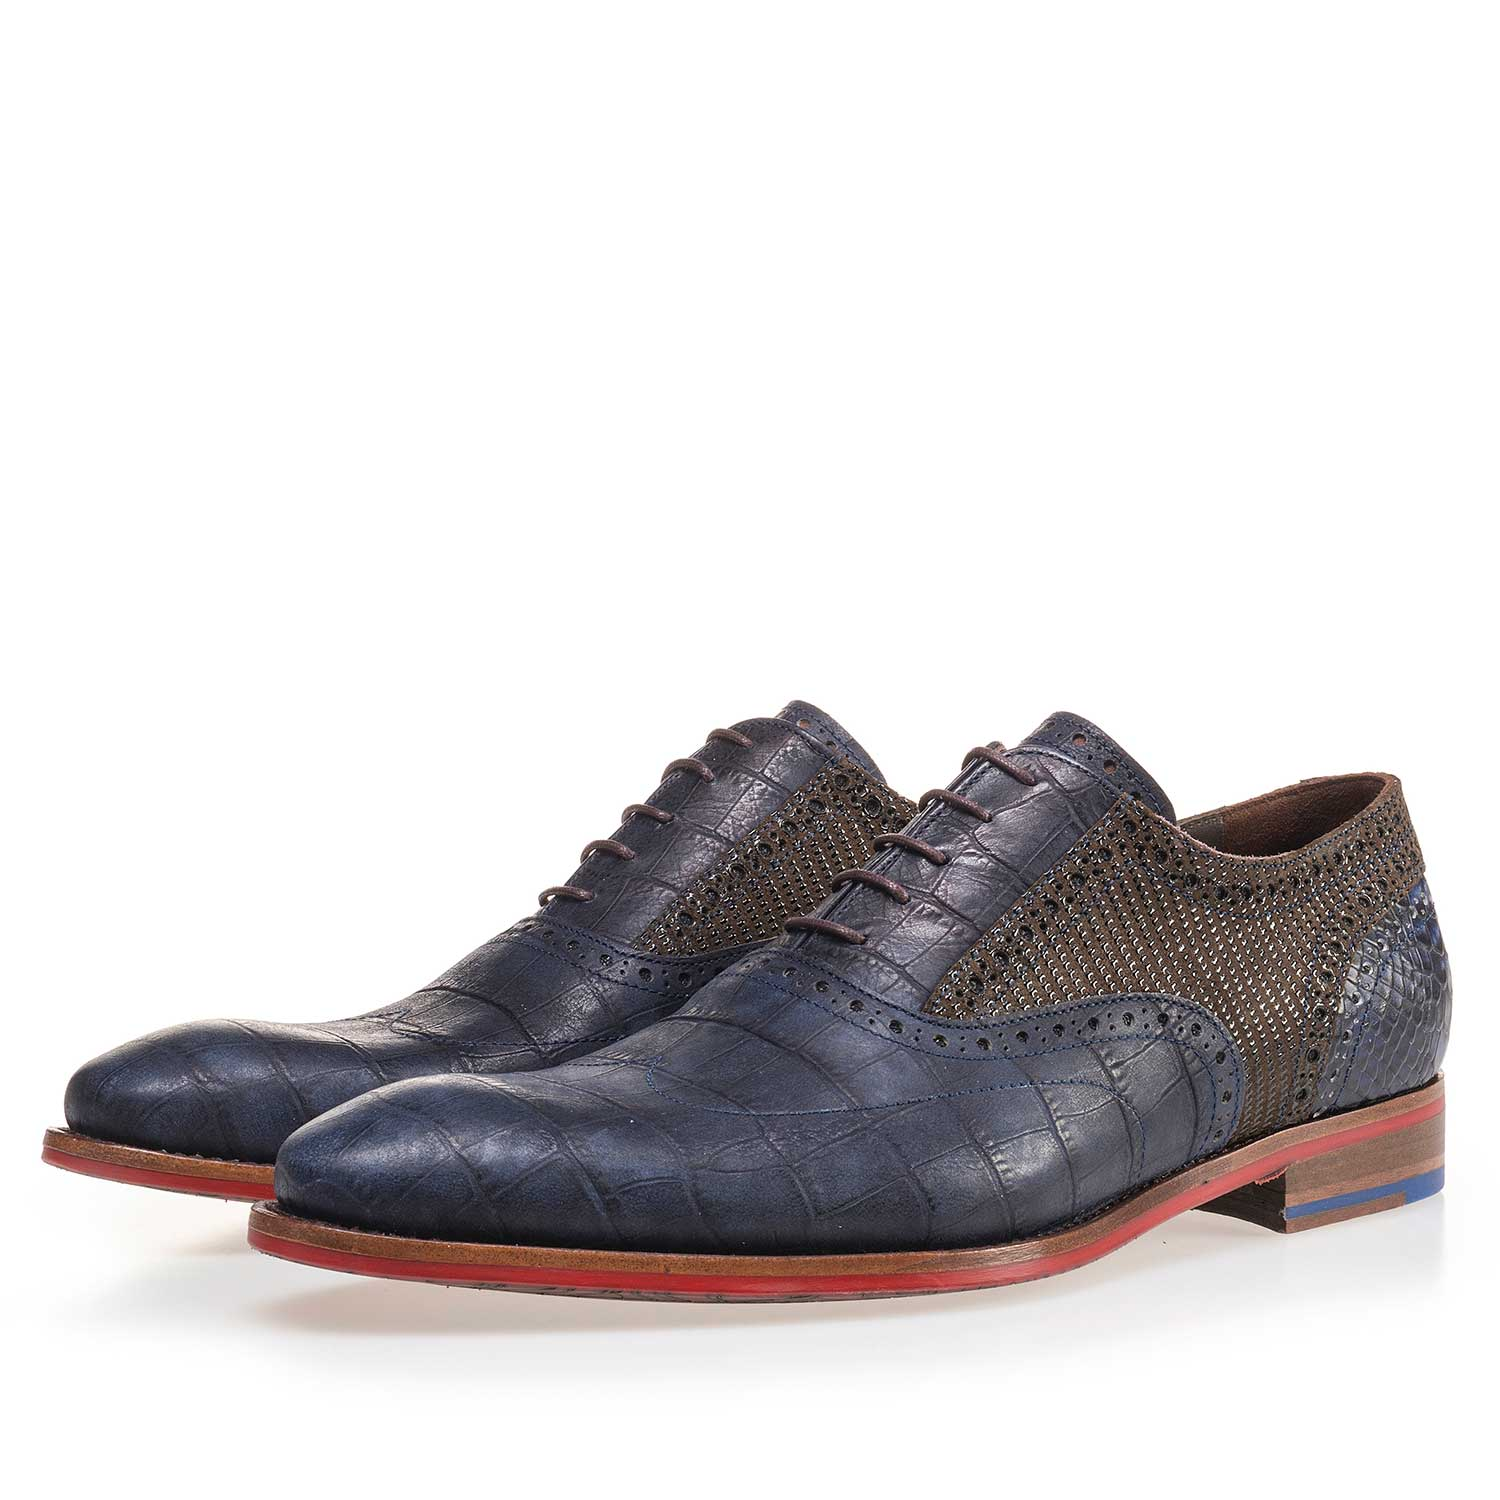 19104/05 - Dark blue calf's leather lace shoe with a croco print